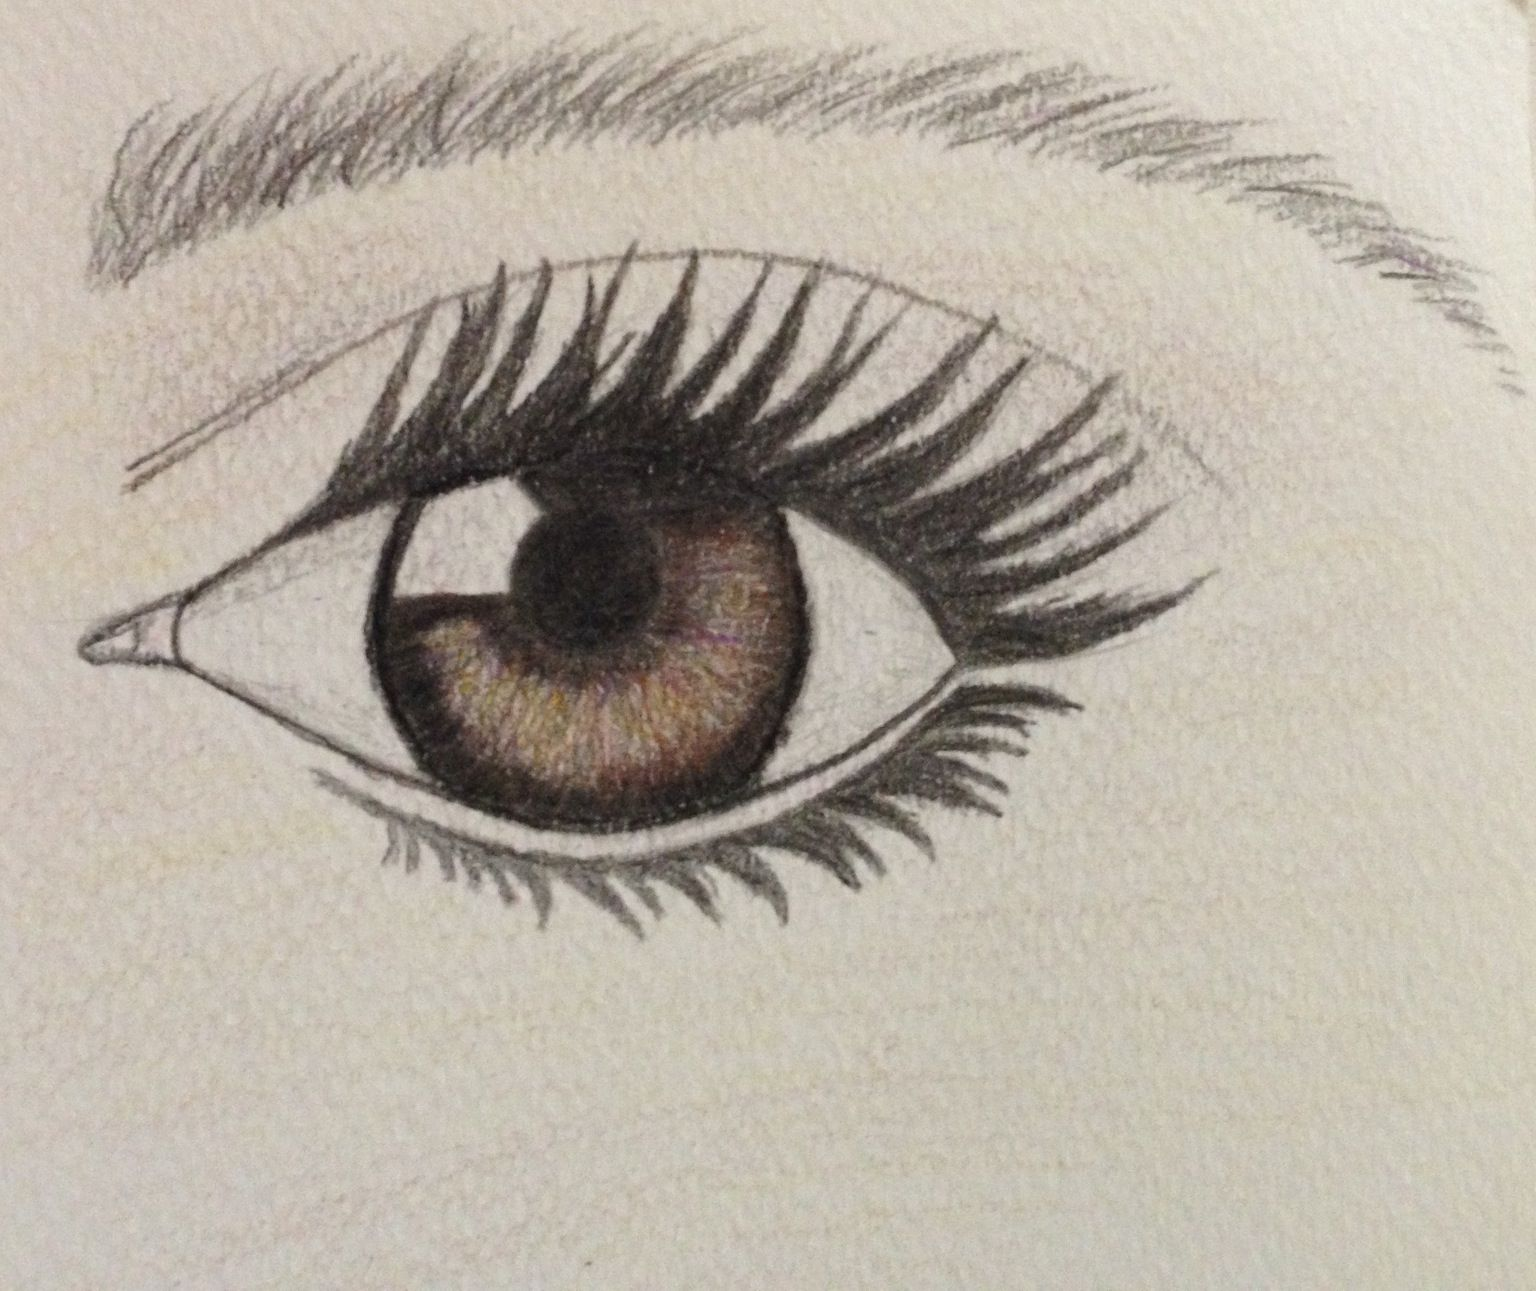 My Eye From The How To Draw An Eye Pin Pretty Neat C R